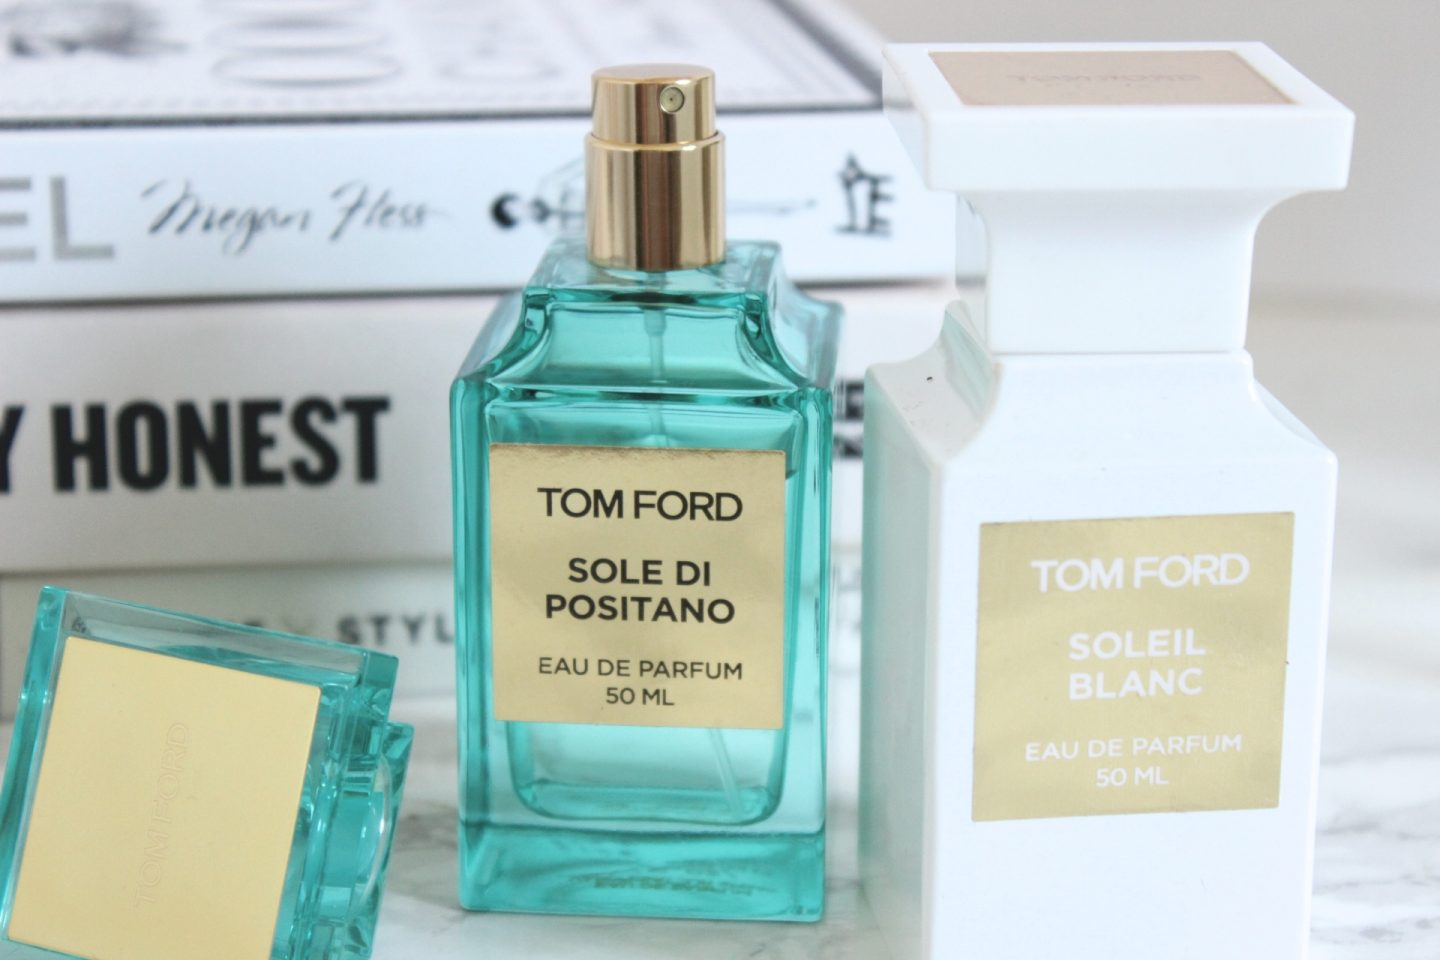 Tom Ford Sole Di Positano and Soleil Blanc